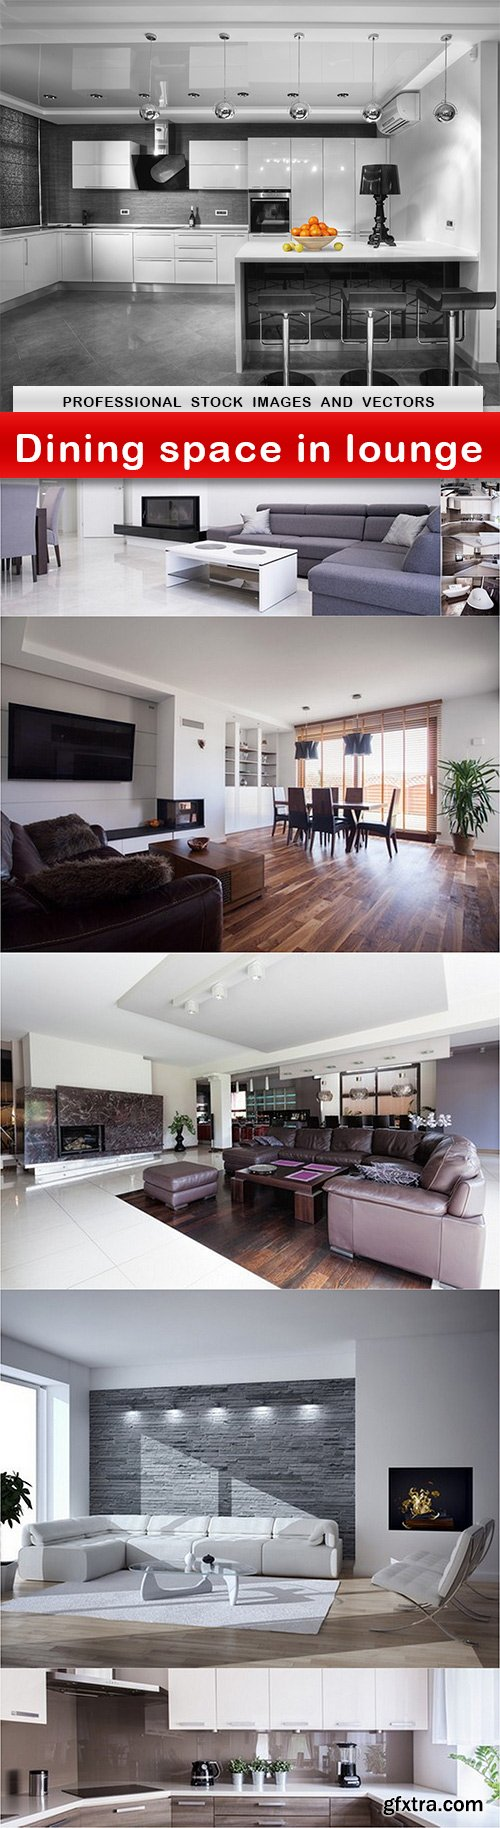 Dining space in lounge - 10 UHQ JPEG